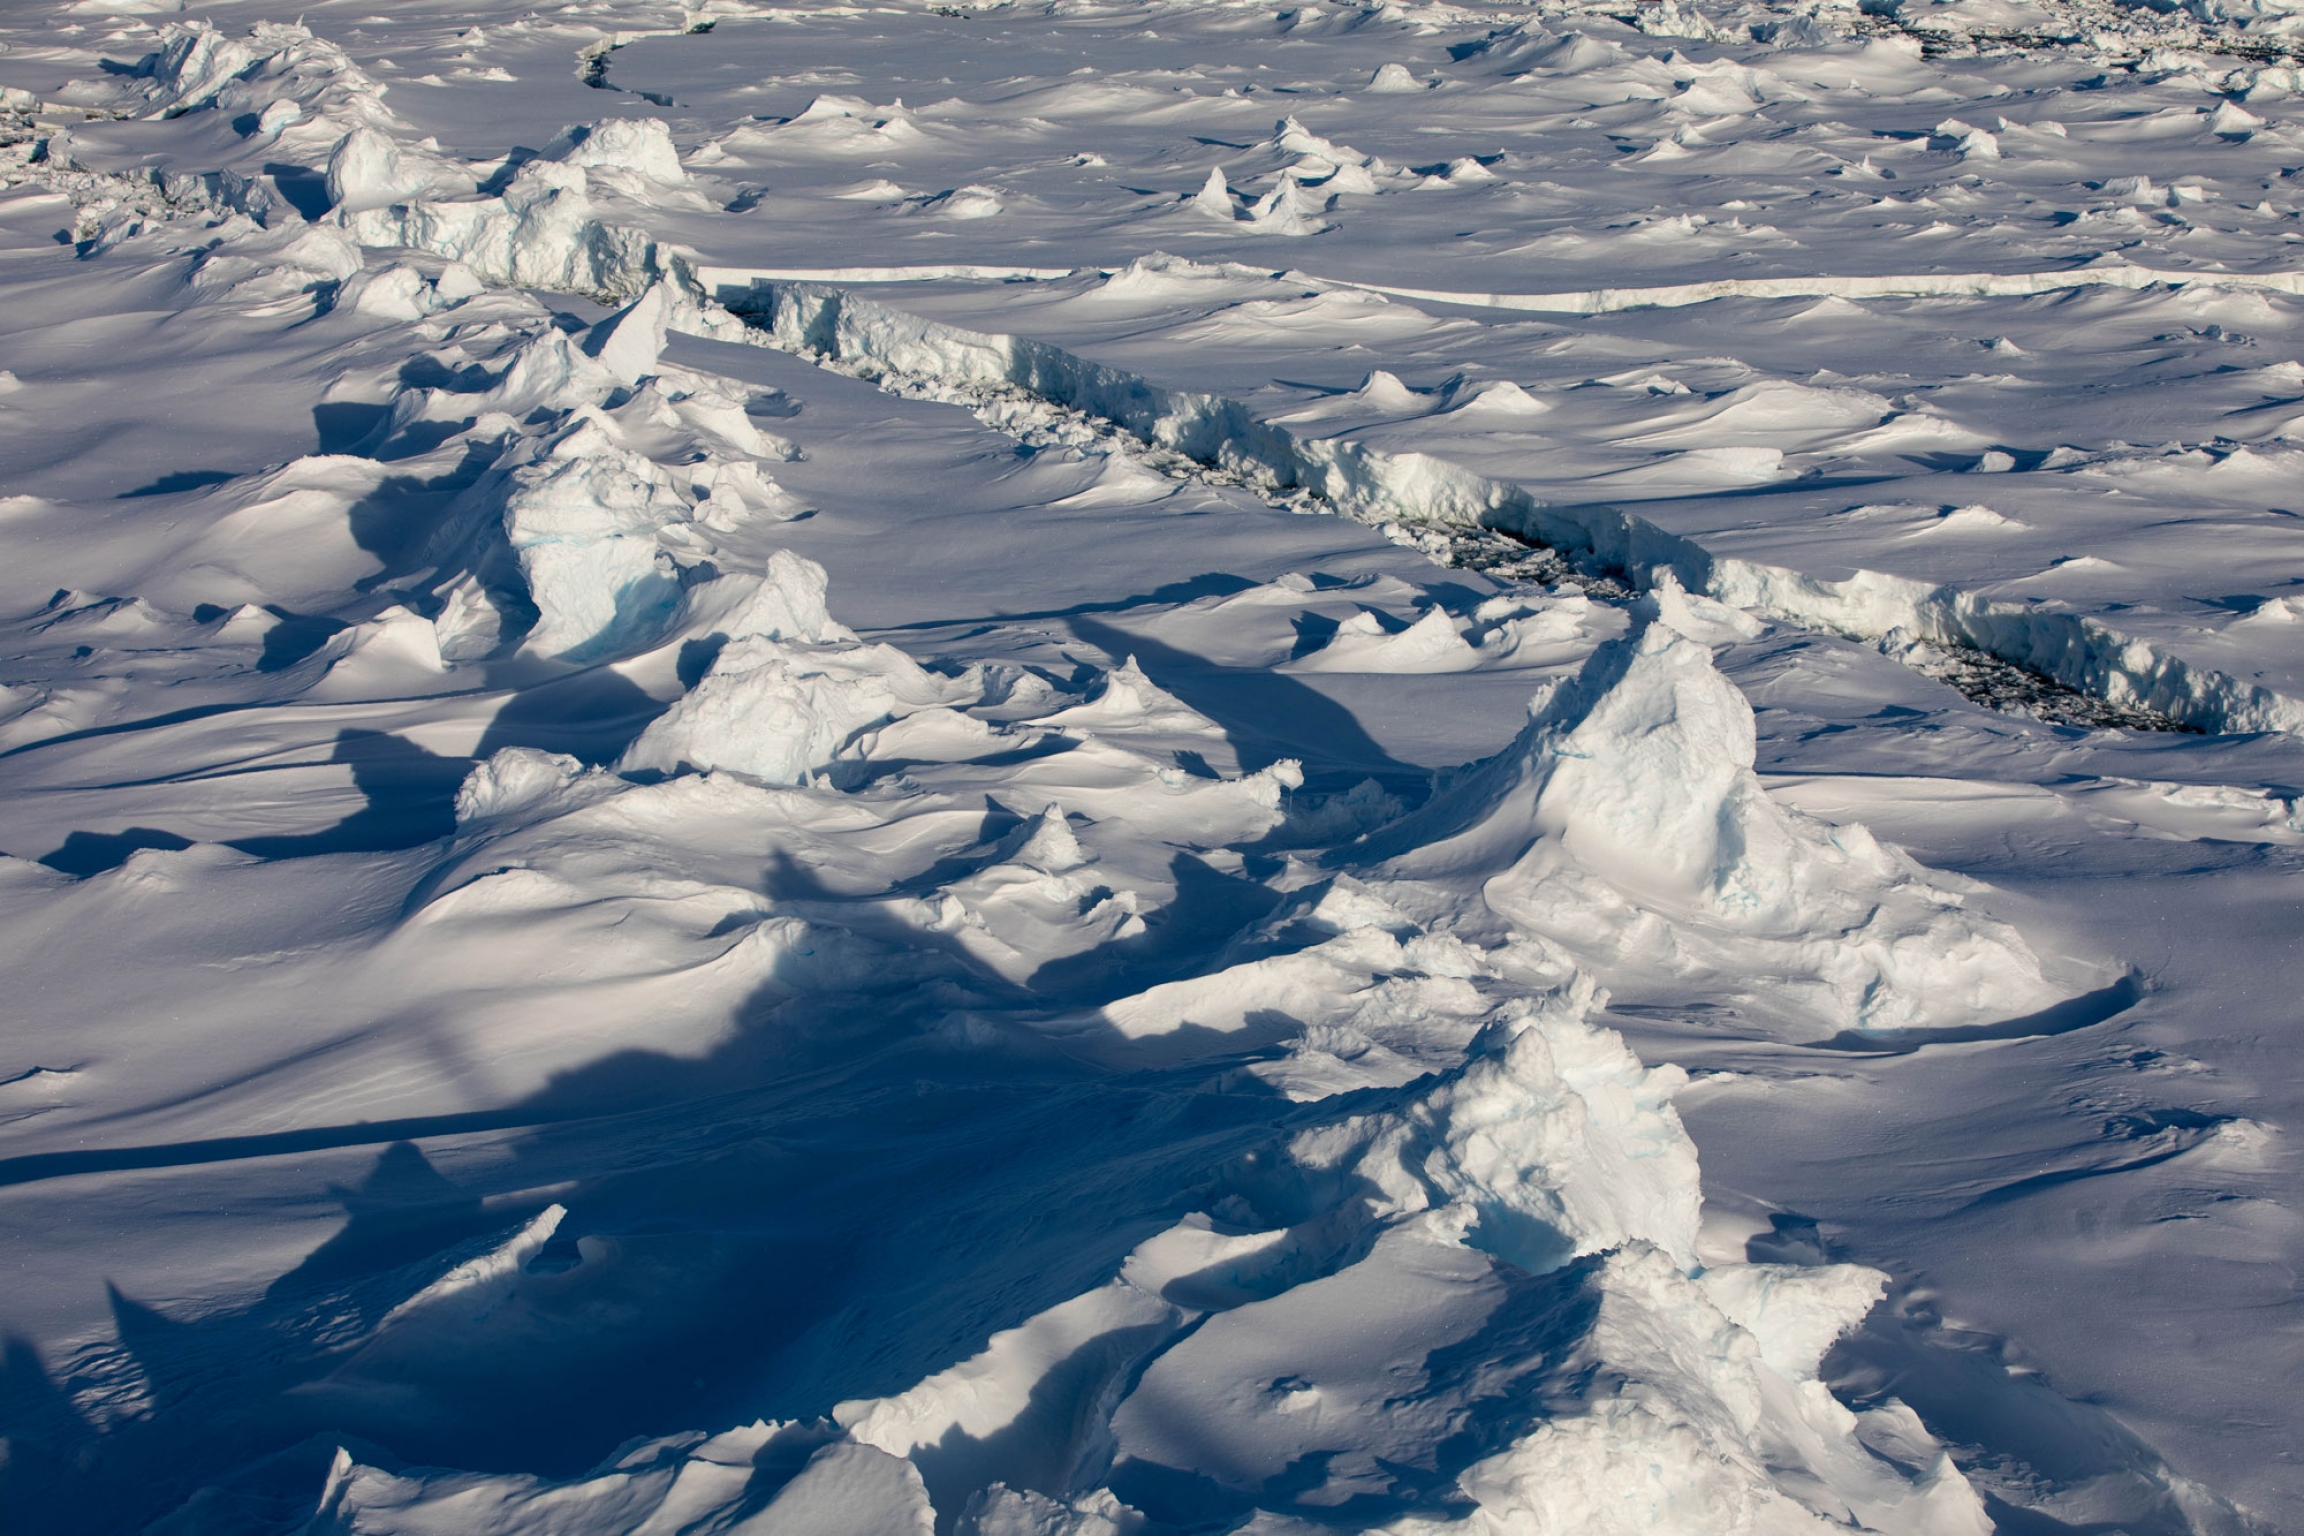 As it ages, large white pieces of ice crash into each other to form pressure ridges in a photo with a thin water path through the two sides.